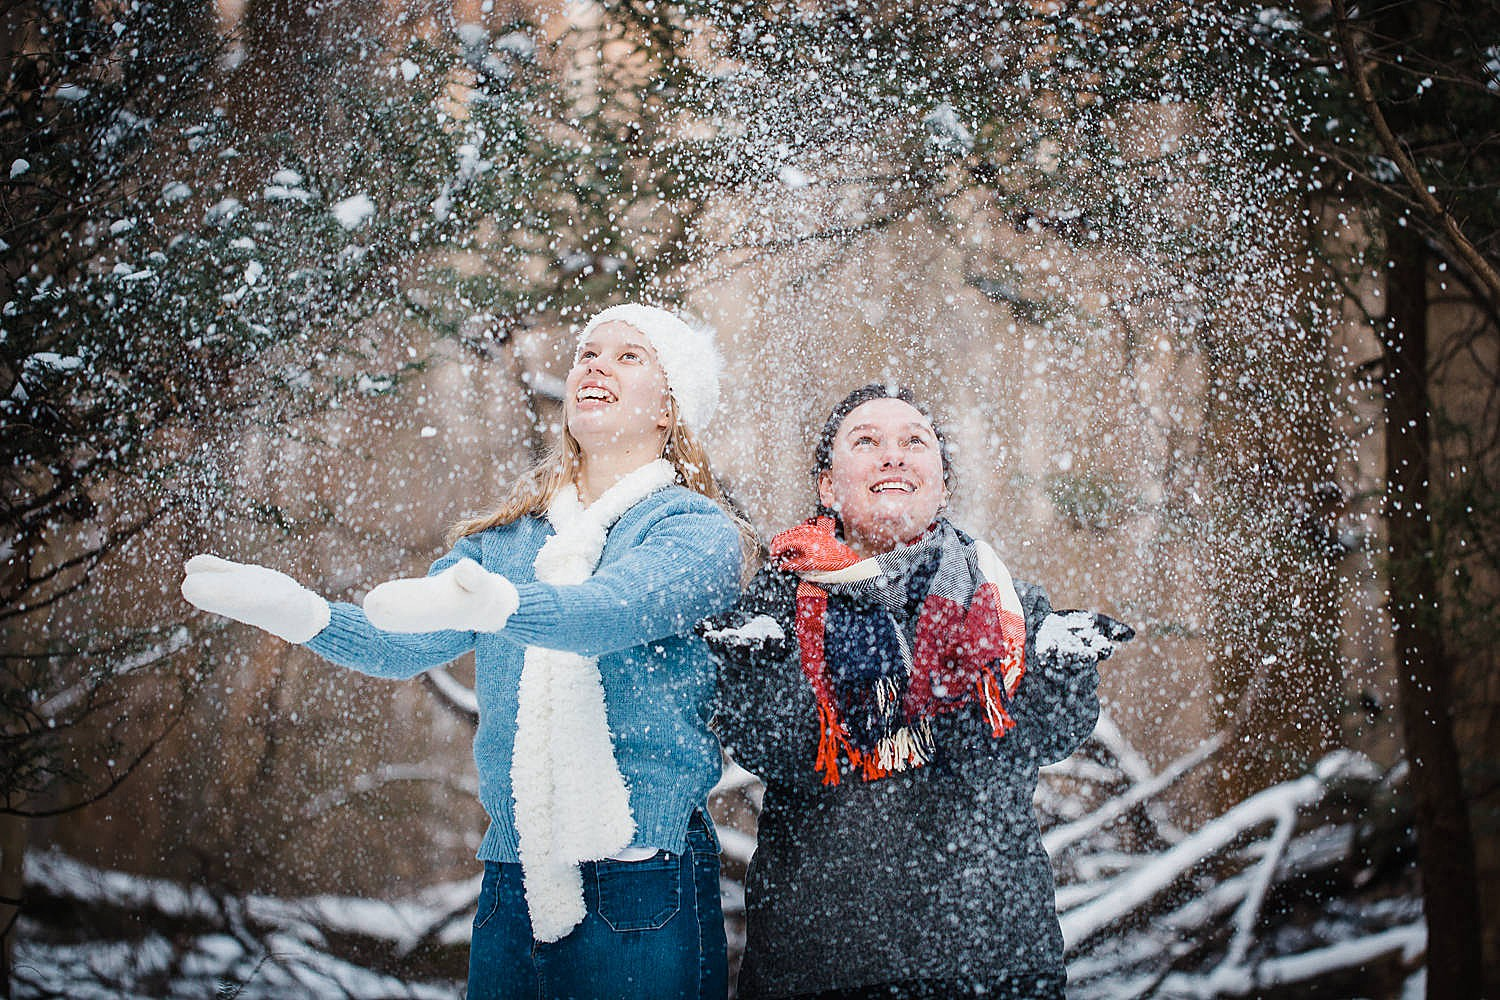 Photo of two young women throwing snow in the air in a wintery forest.